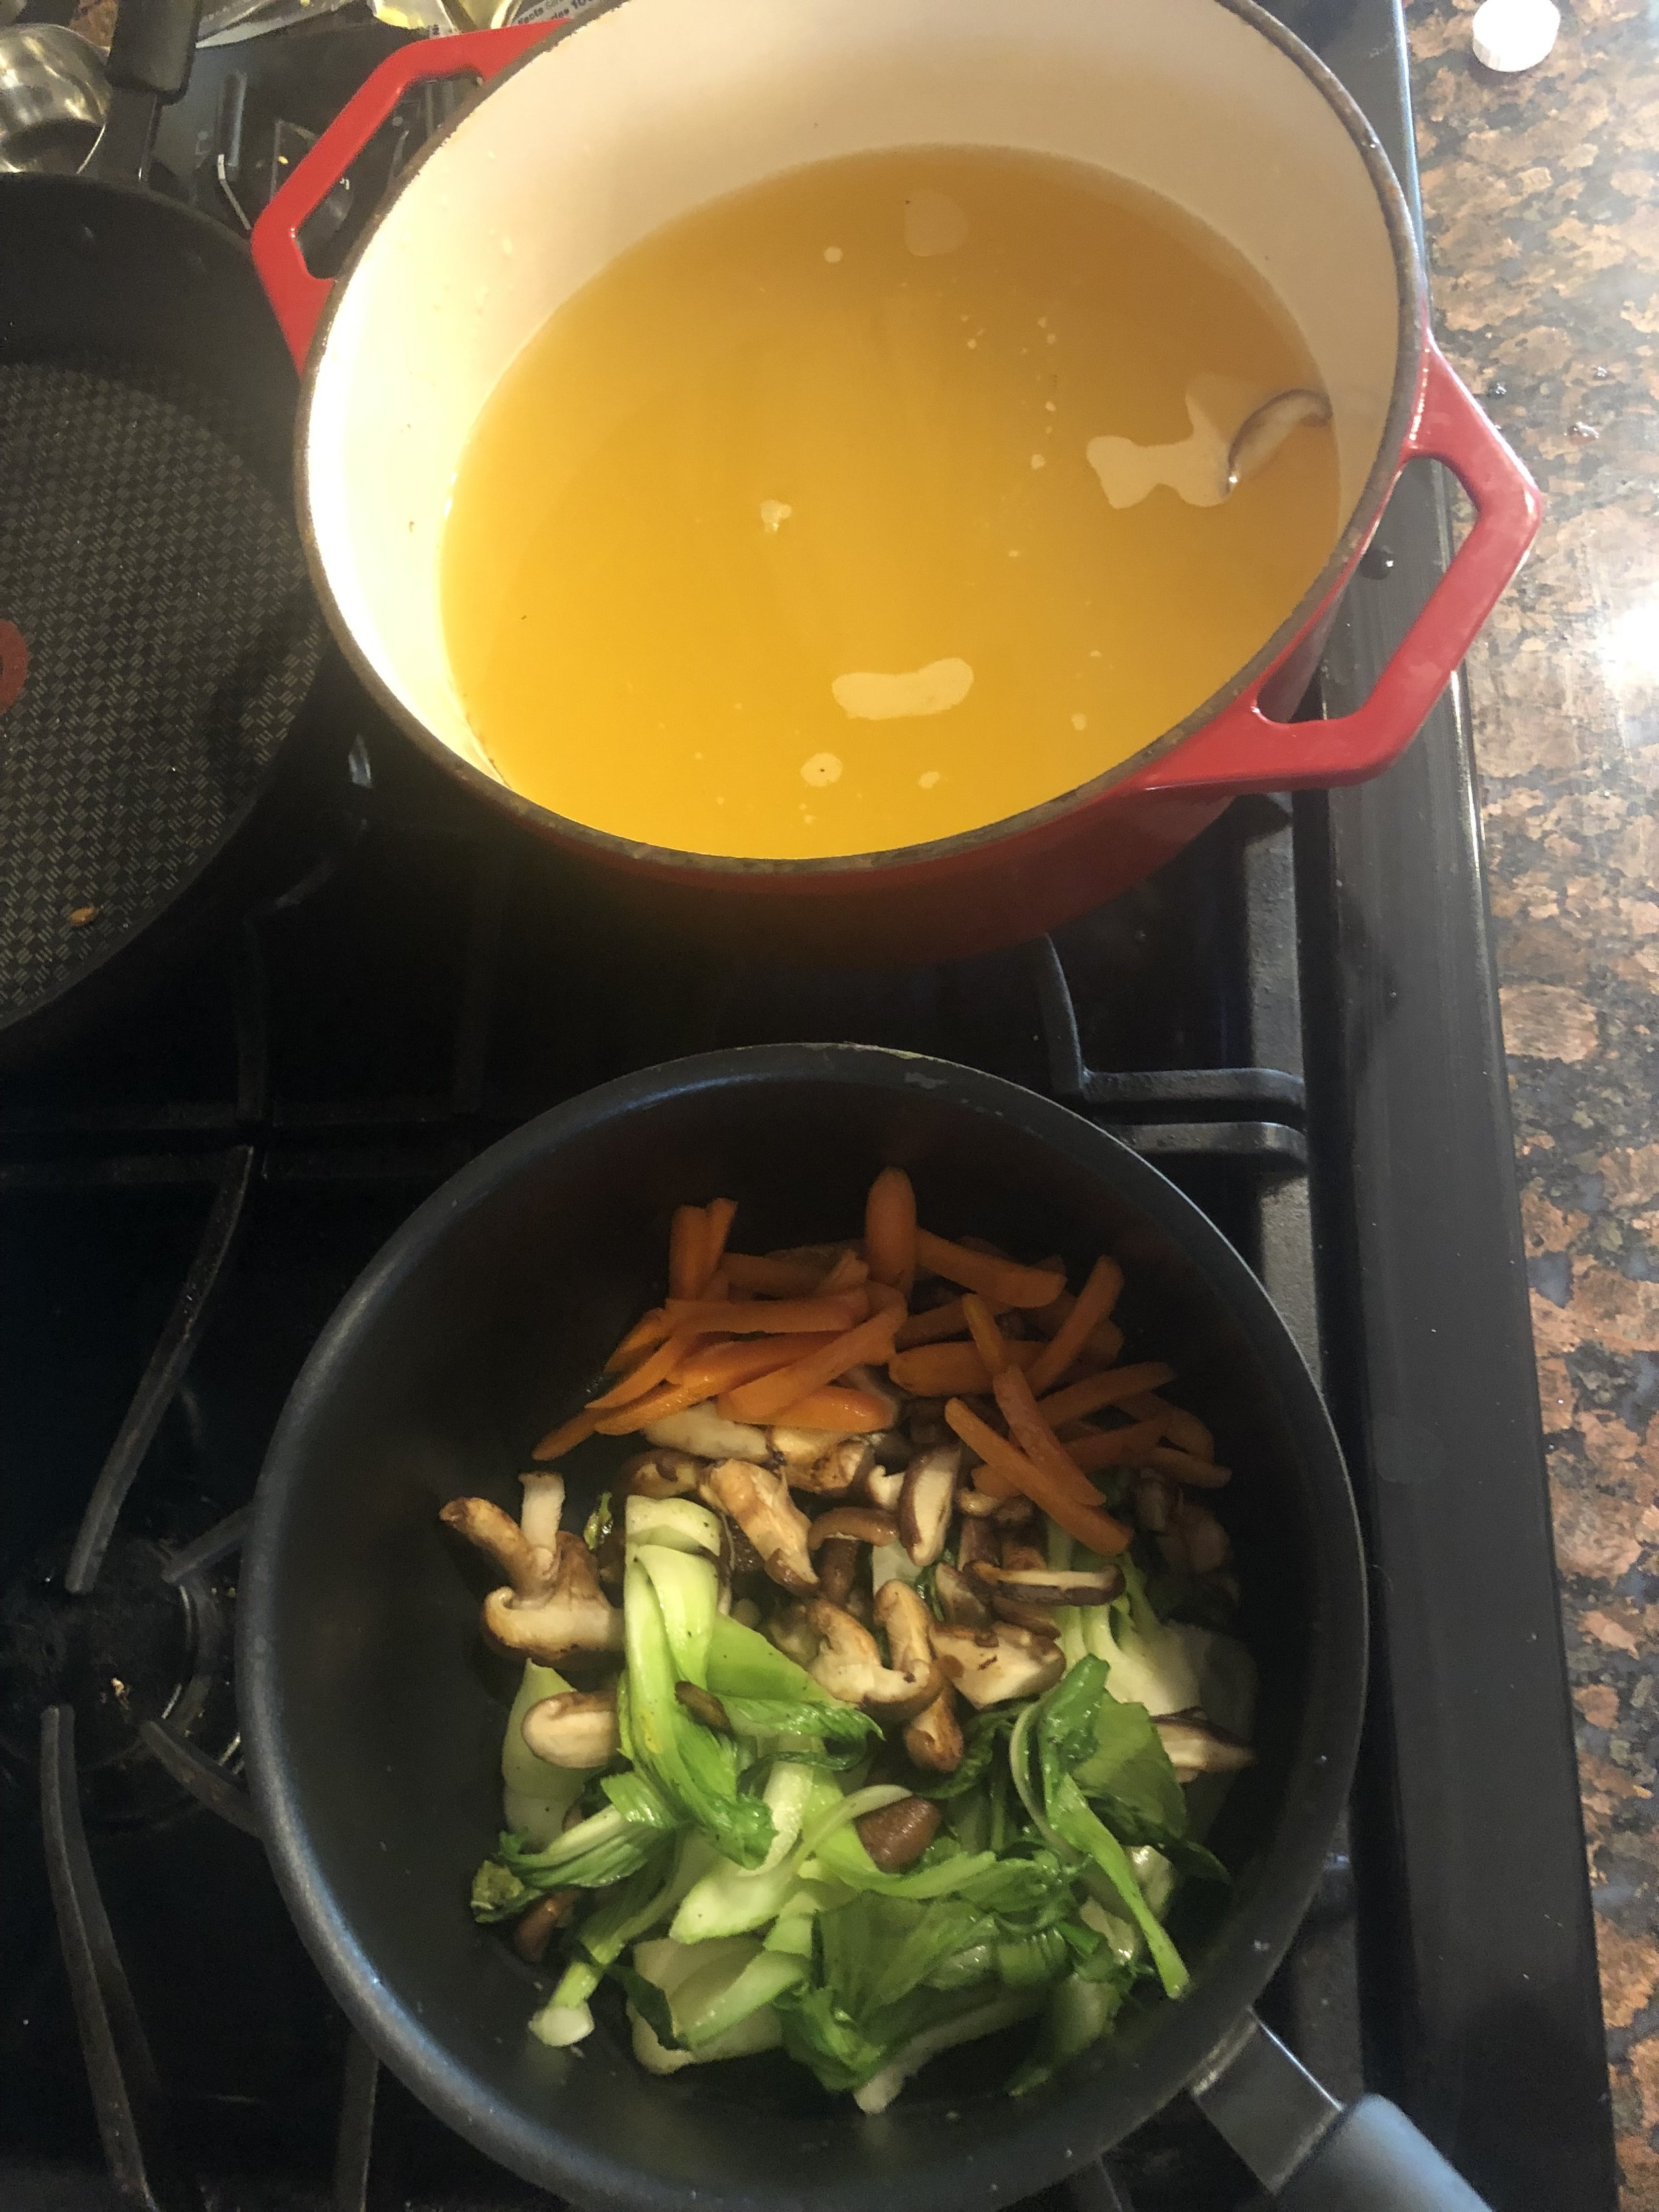 prepped all of the veggies and heating up the broth about to add the noodles!